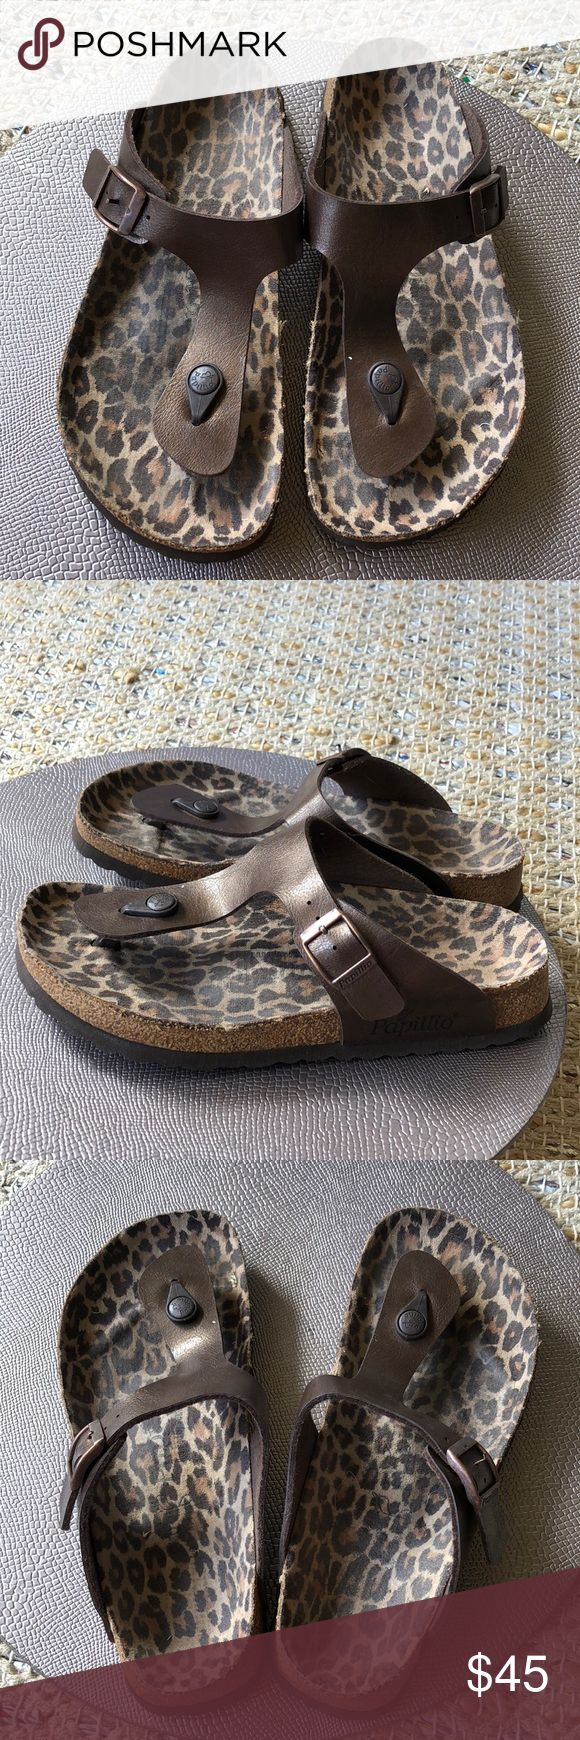 Papilllio Gizeh Birkenstock Papillio Gizeh Sandals. In great condition! Description and details in pictures 🌺 Birkenstock Shoes Flats & Loafers